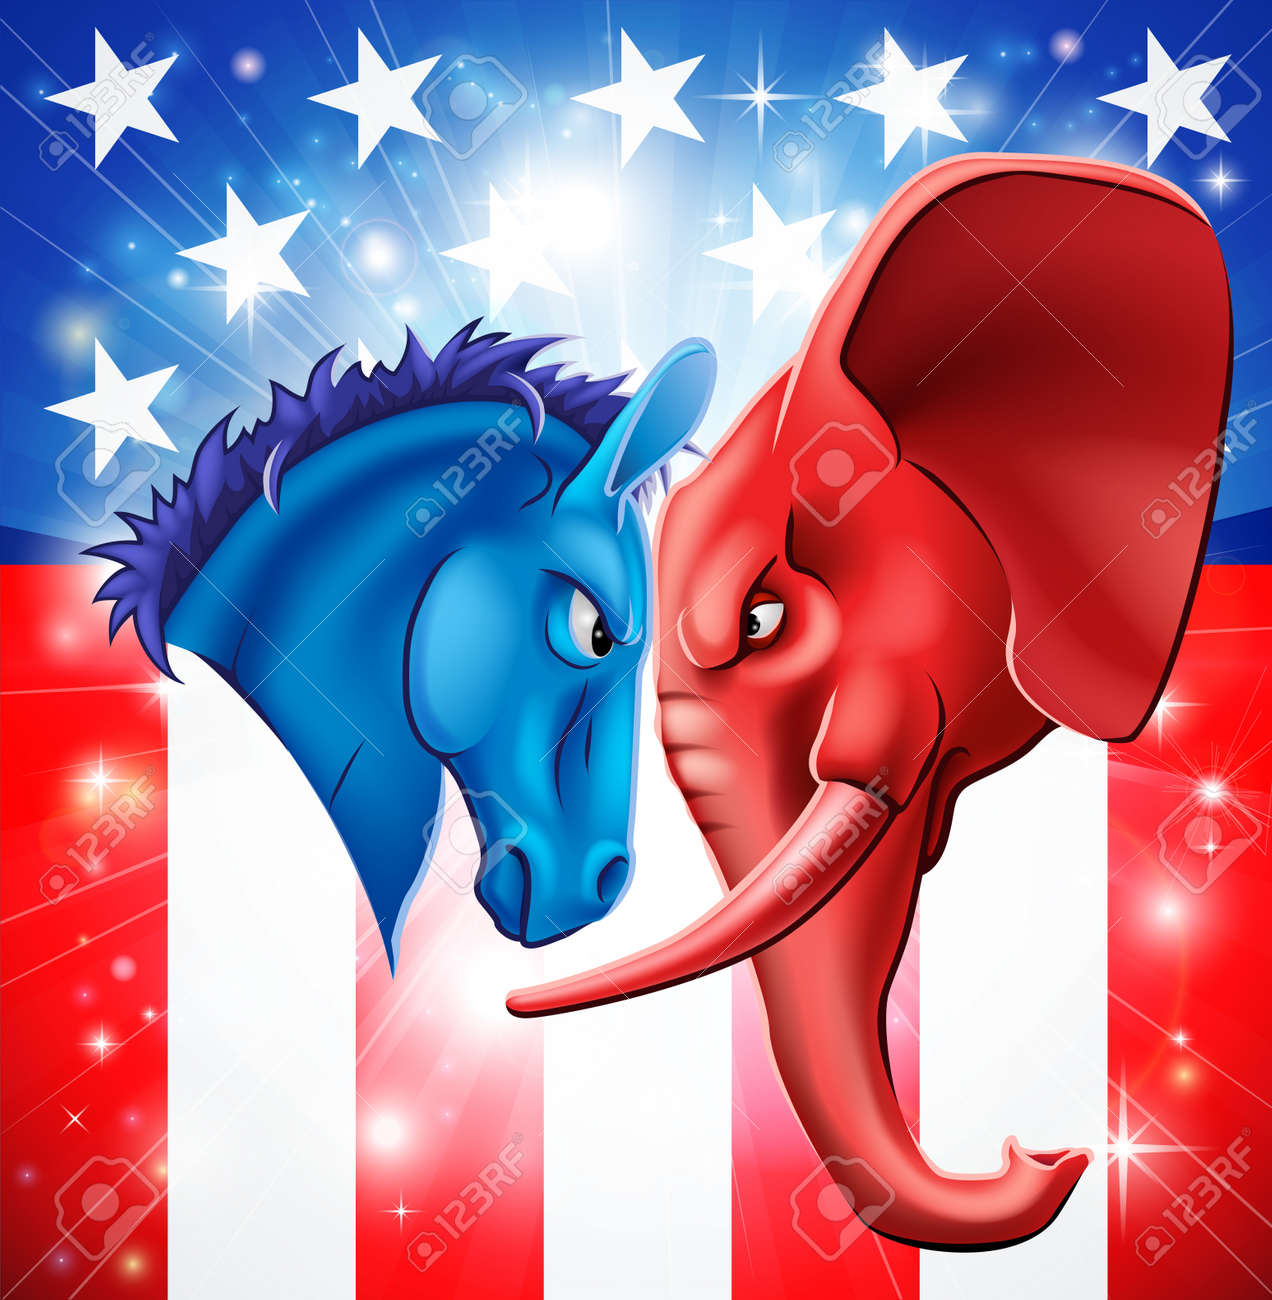 American Politics Concept Illustration Of A Donkey And Elephant ...